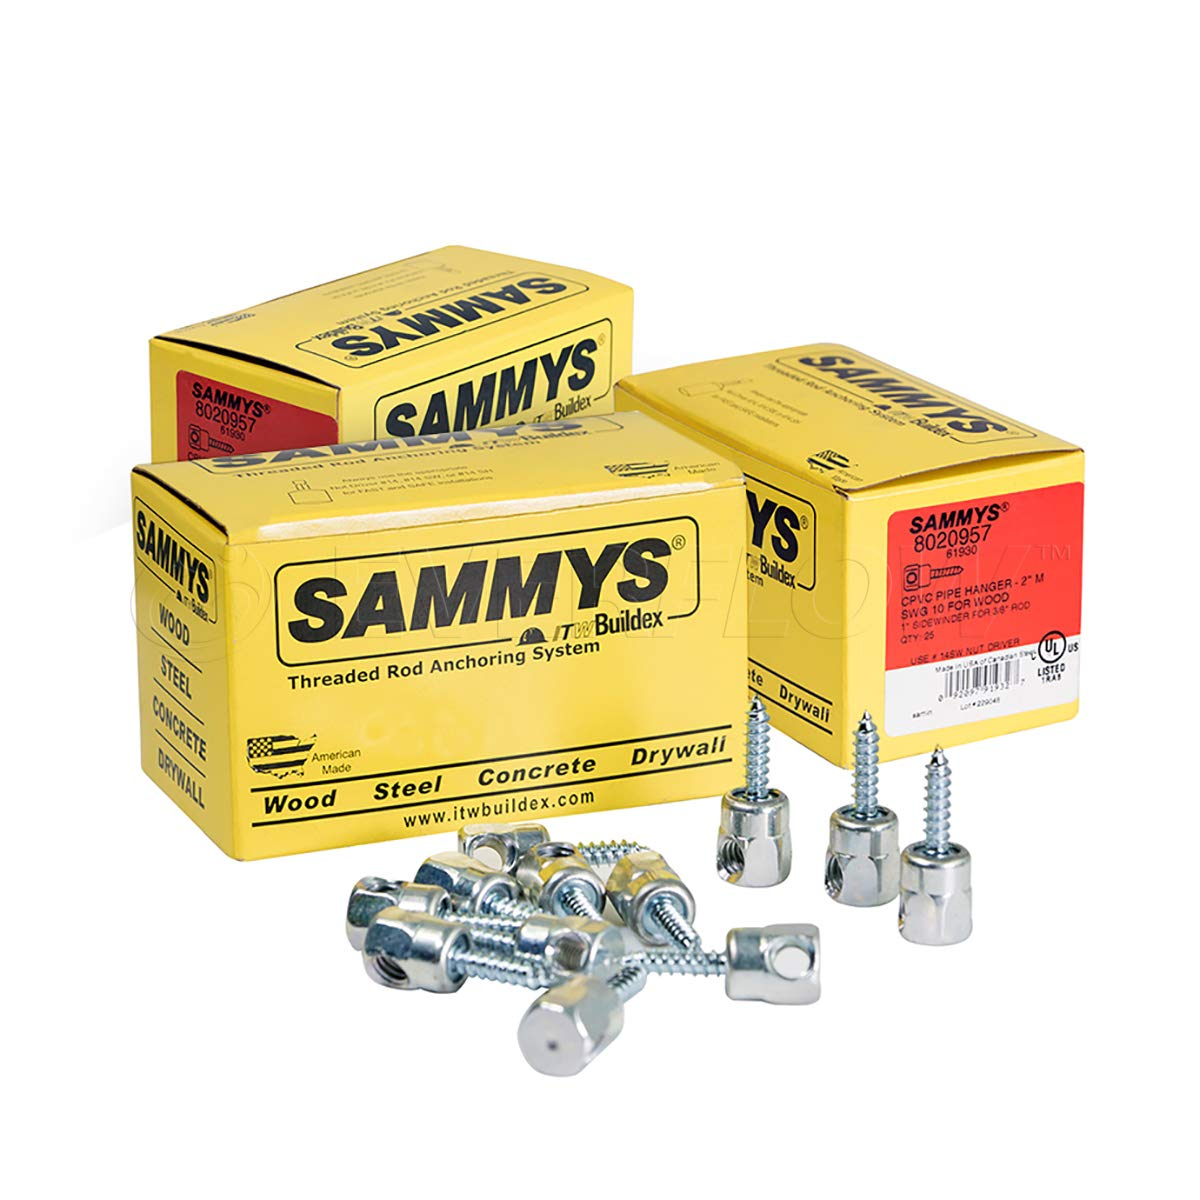 Everflow Sammys 8020957-75 SWG 10 3/8 Inch Screw Sidewinder Designed for Wood, Rod Hanger, Installs Horizontally, Easy Adjustment, Zinc Plated Corrosion Resistance, 1/4 x 1 Inch Screw Length (Pack 75)